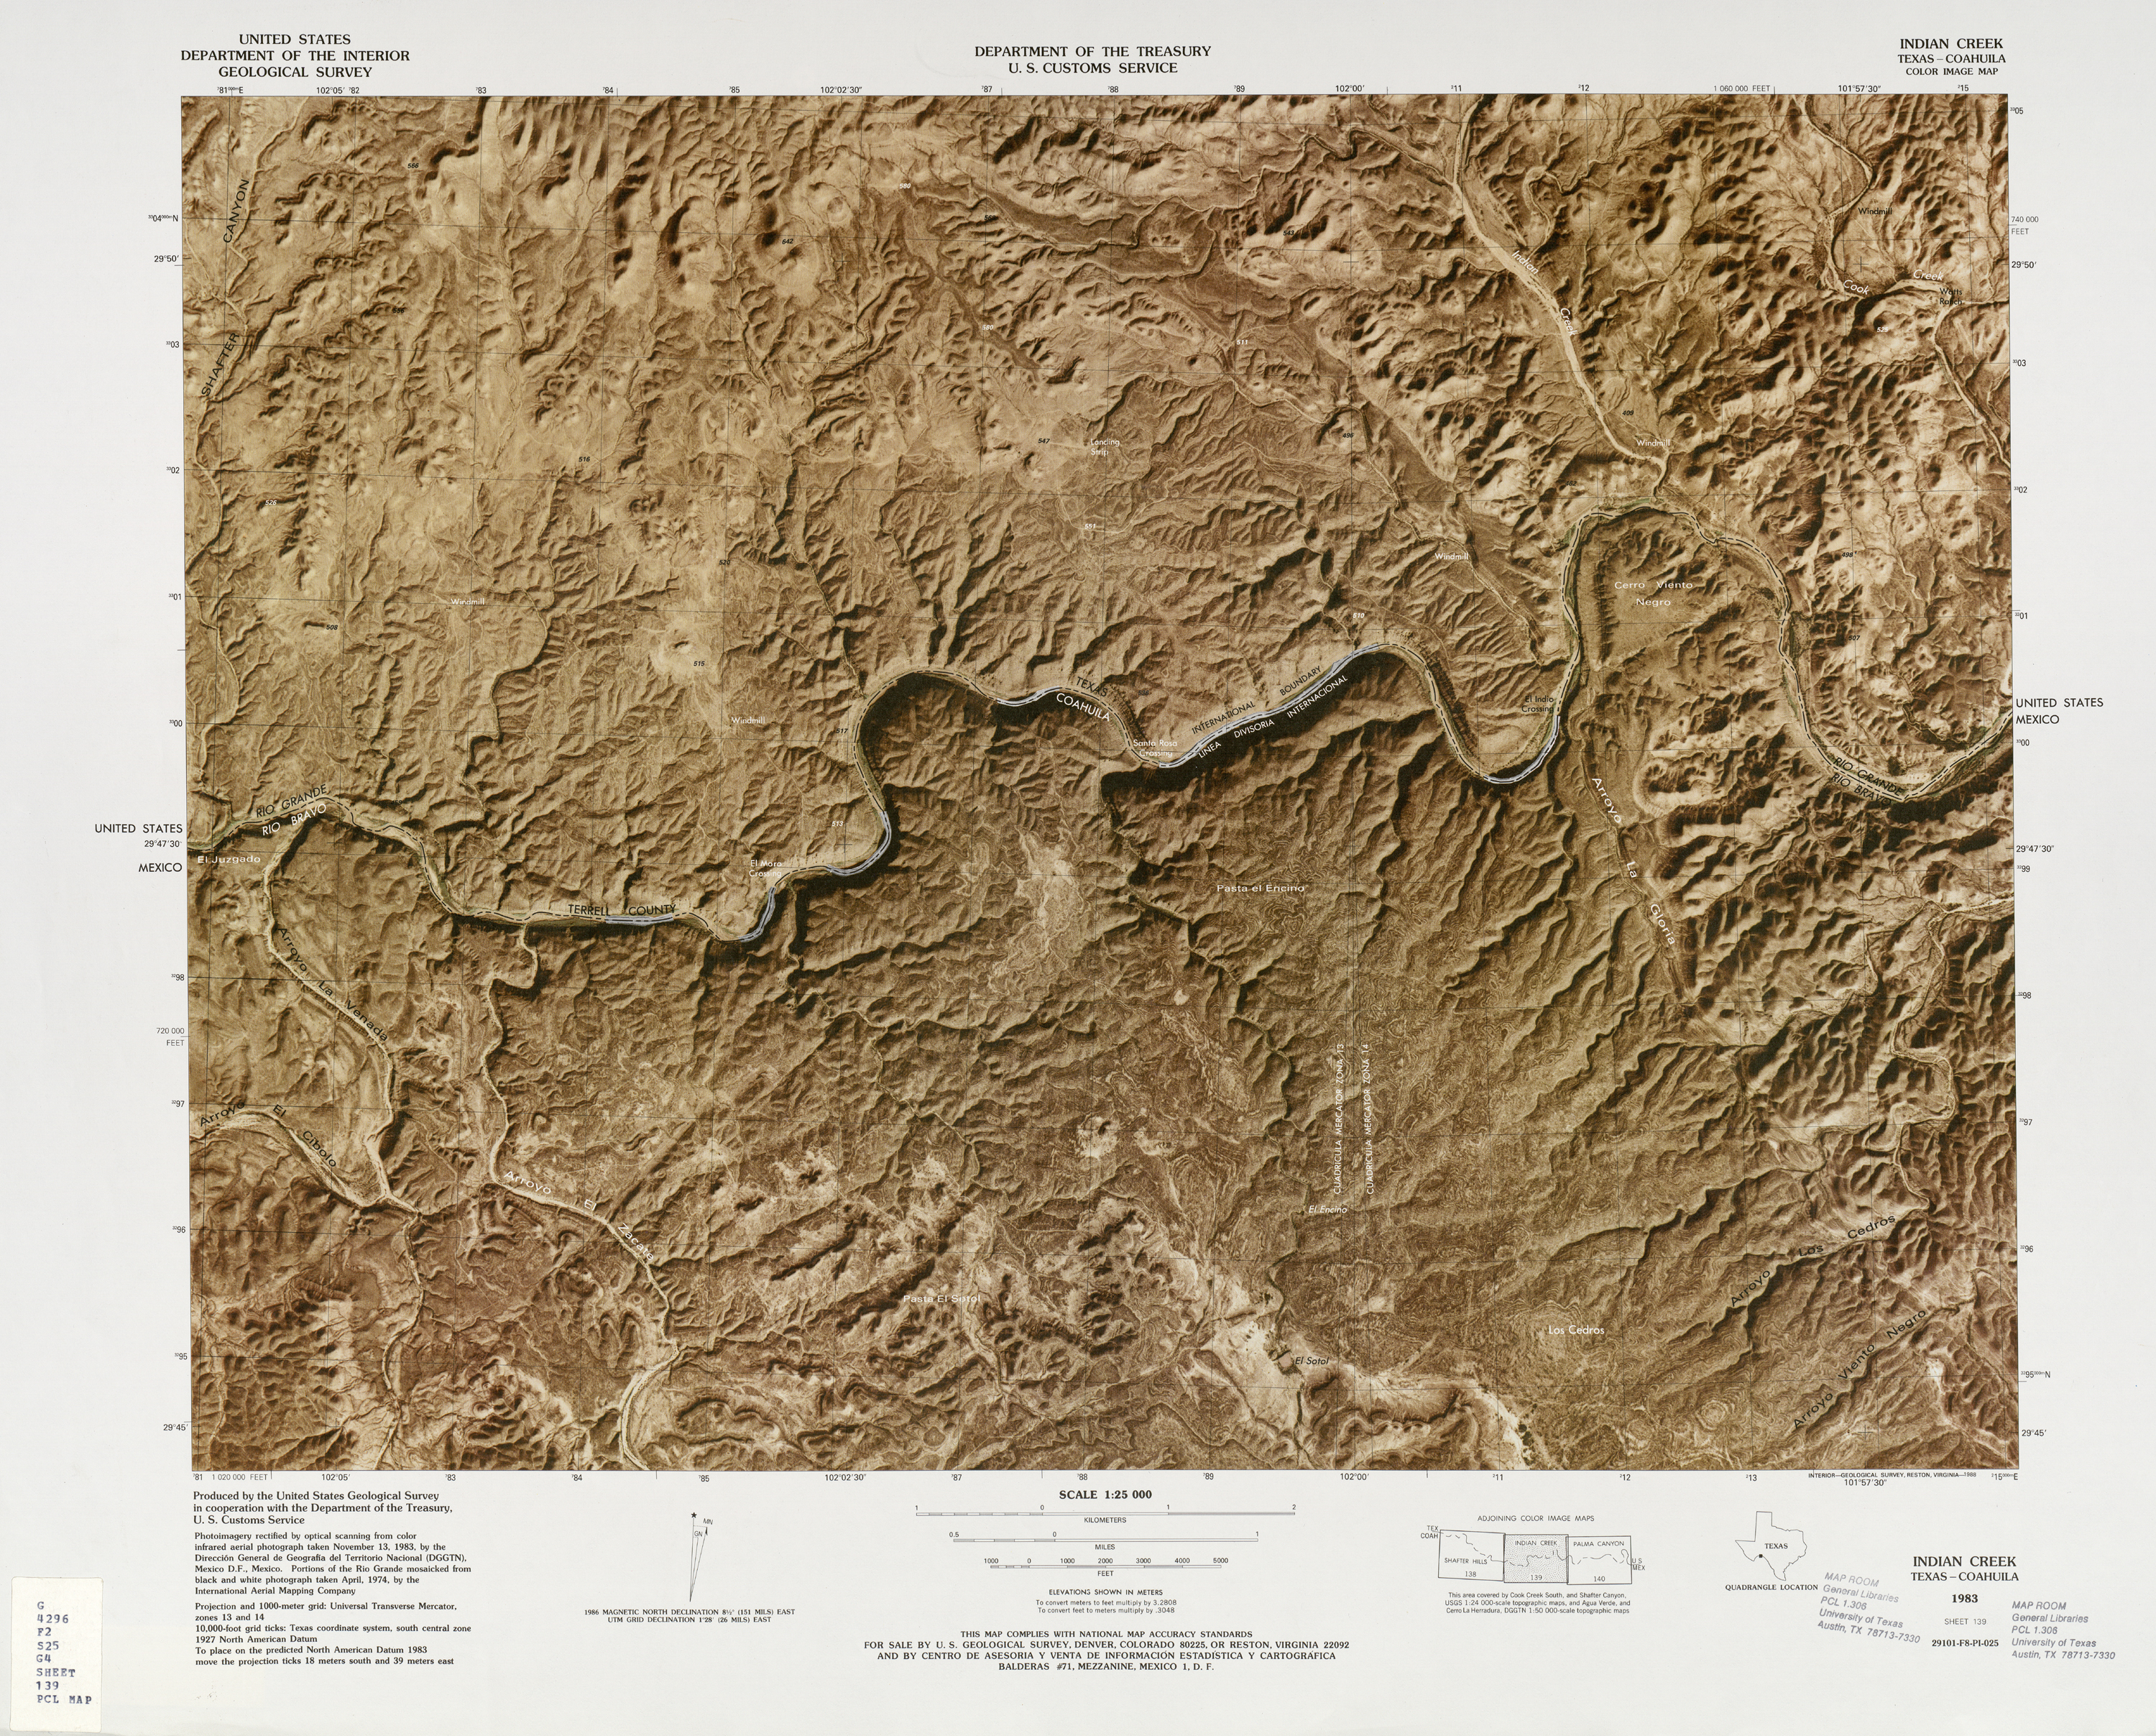 United States-Mexico Border Map, Indian Creek